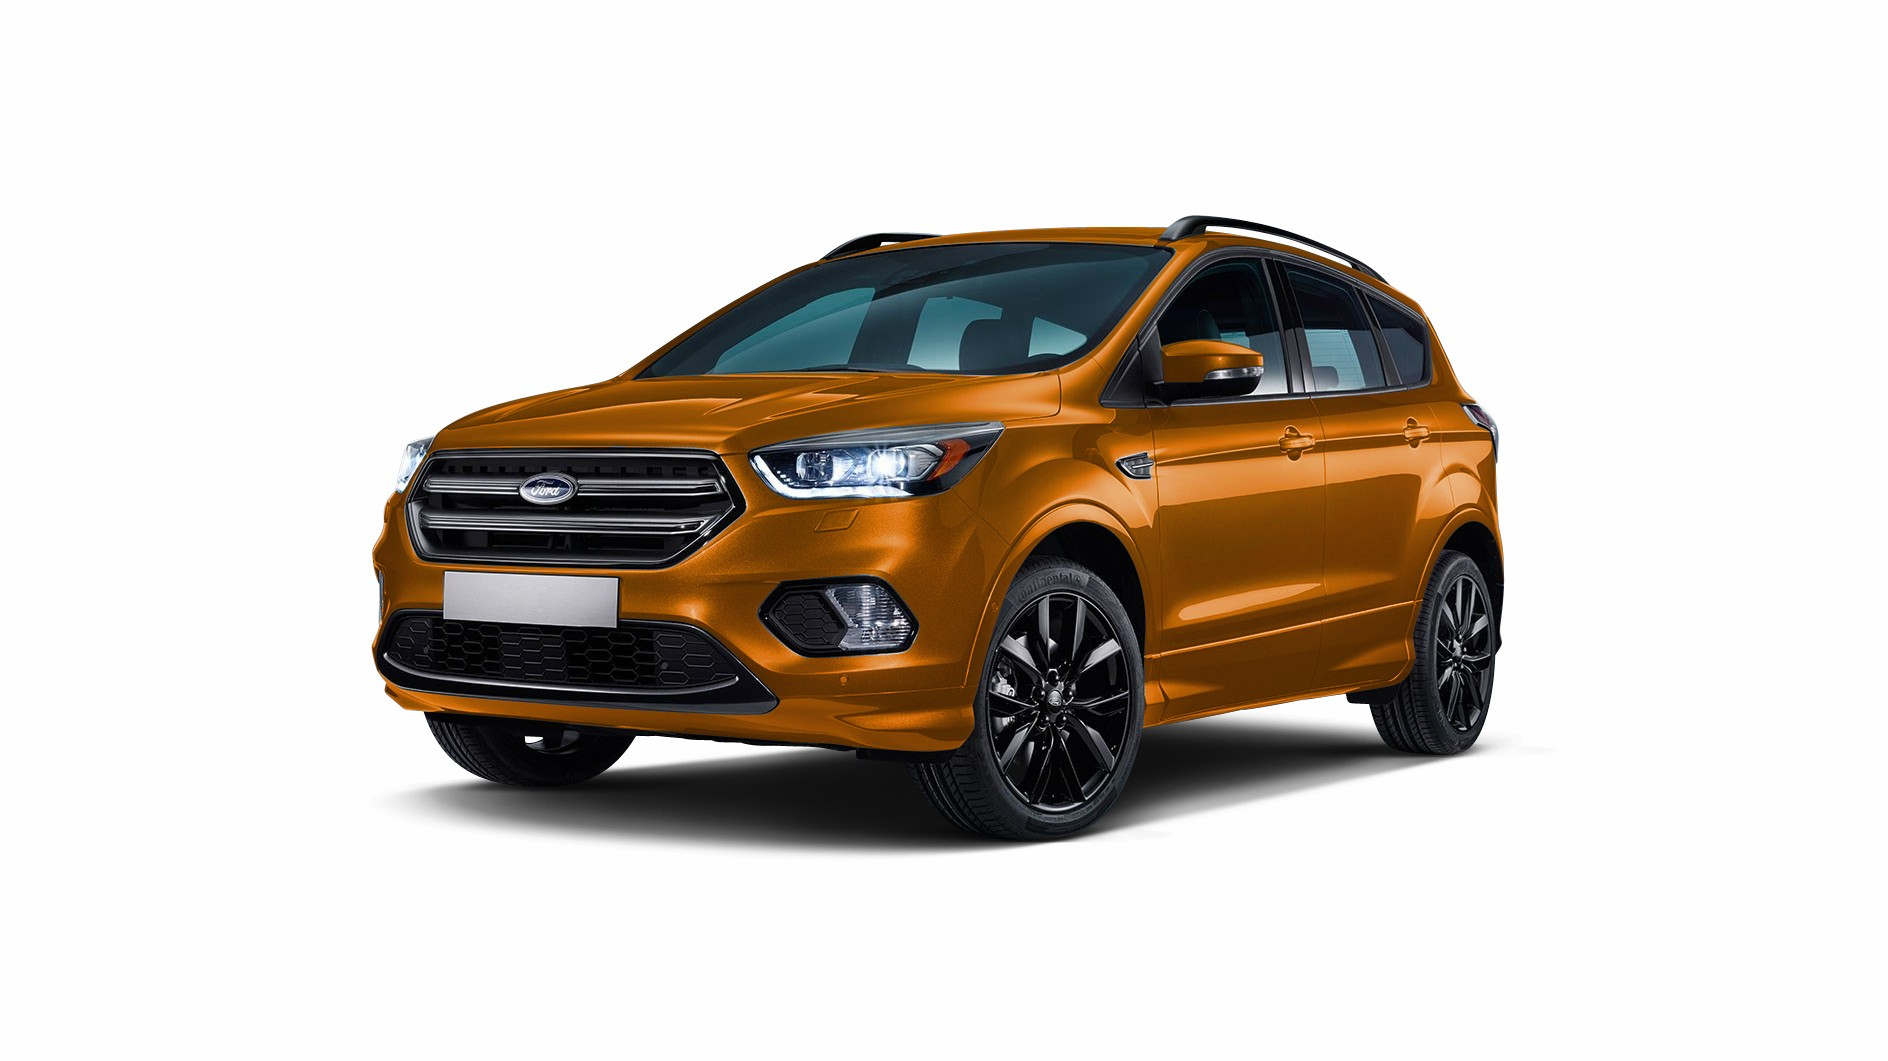 ford kuga nouveau 4x4 et suv 5 portes diesel 2 0 tdci 150 s s 4x4 bvm6 bo te manuelle. Black Bedroom Furniture Sets. Home Design Ideas